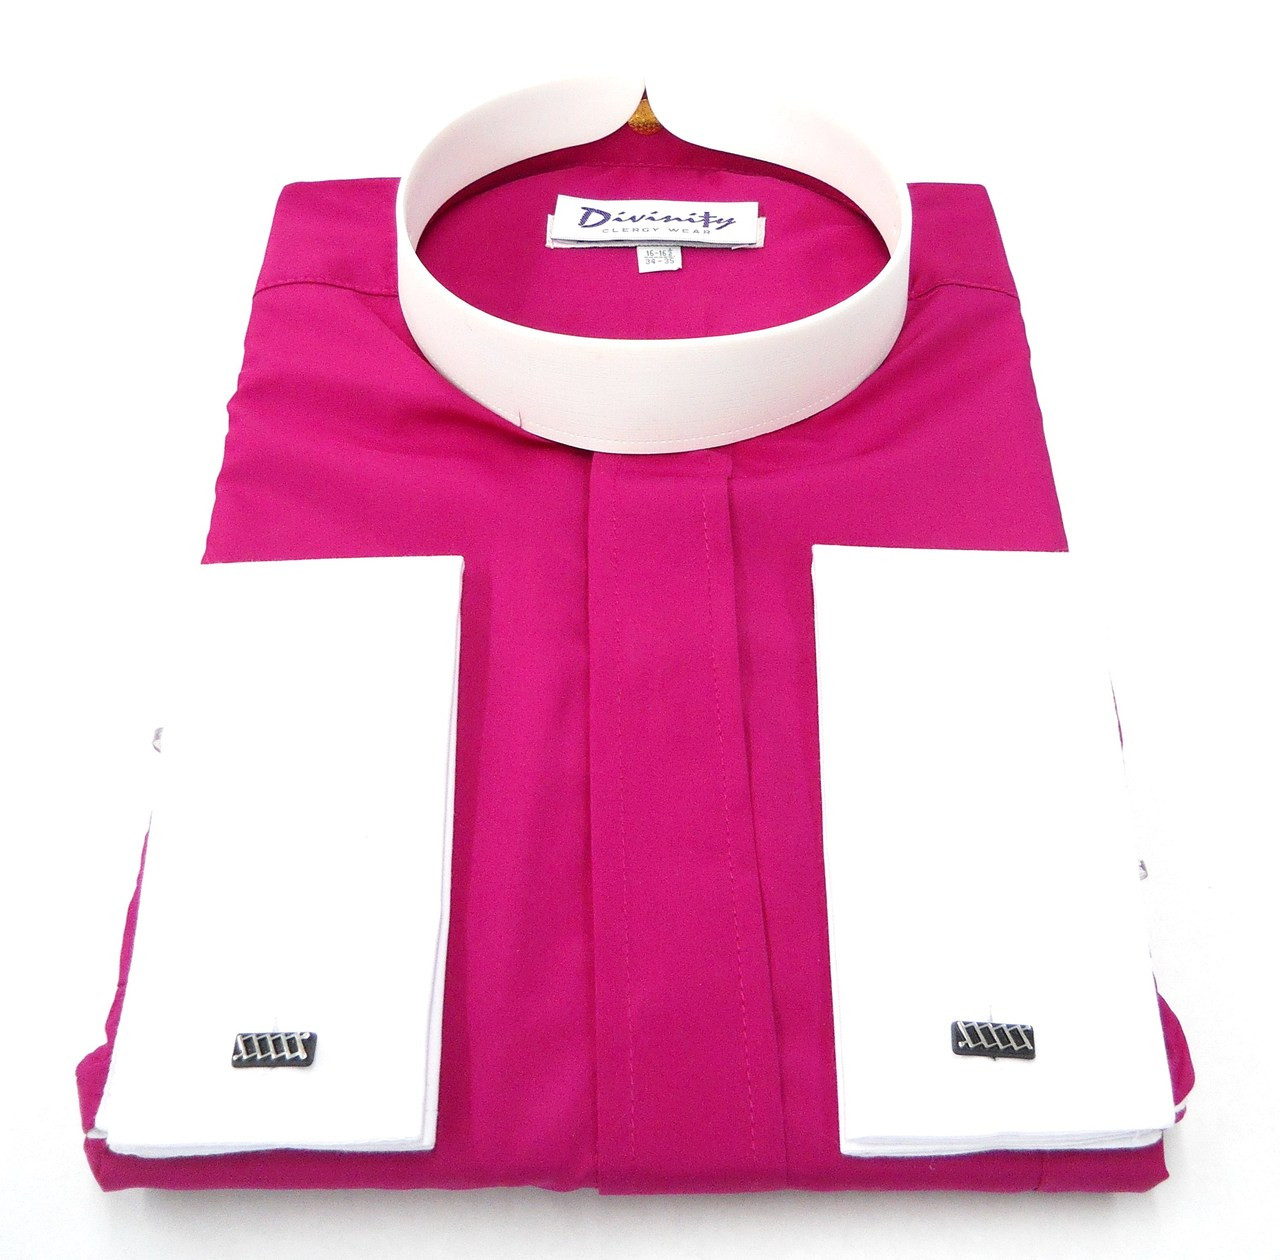 Banded Collar Clergy Shirt Divinity Clergy Wear